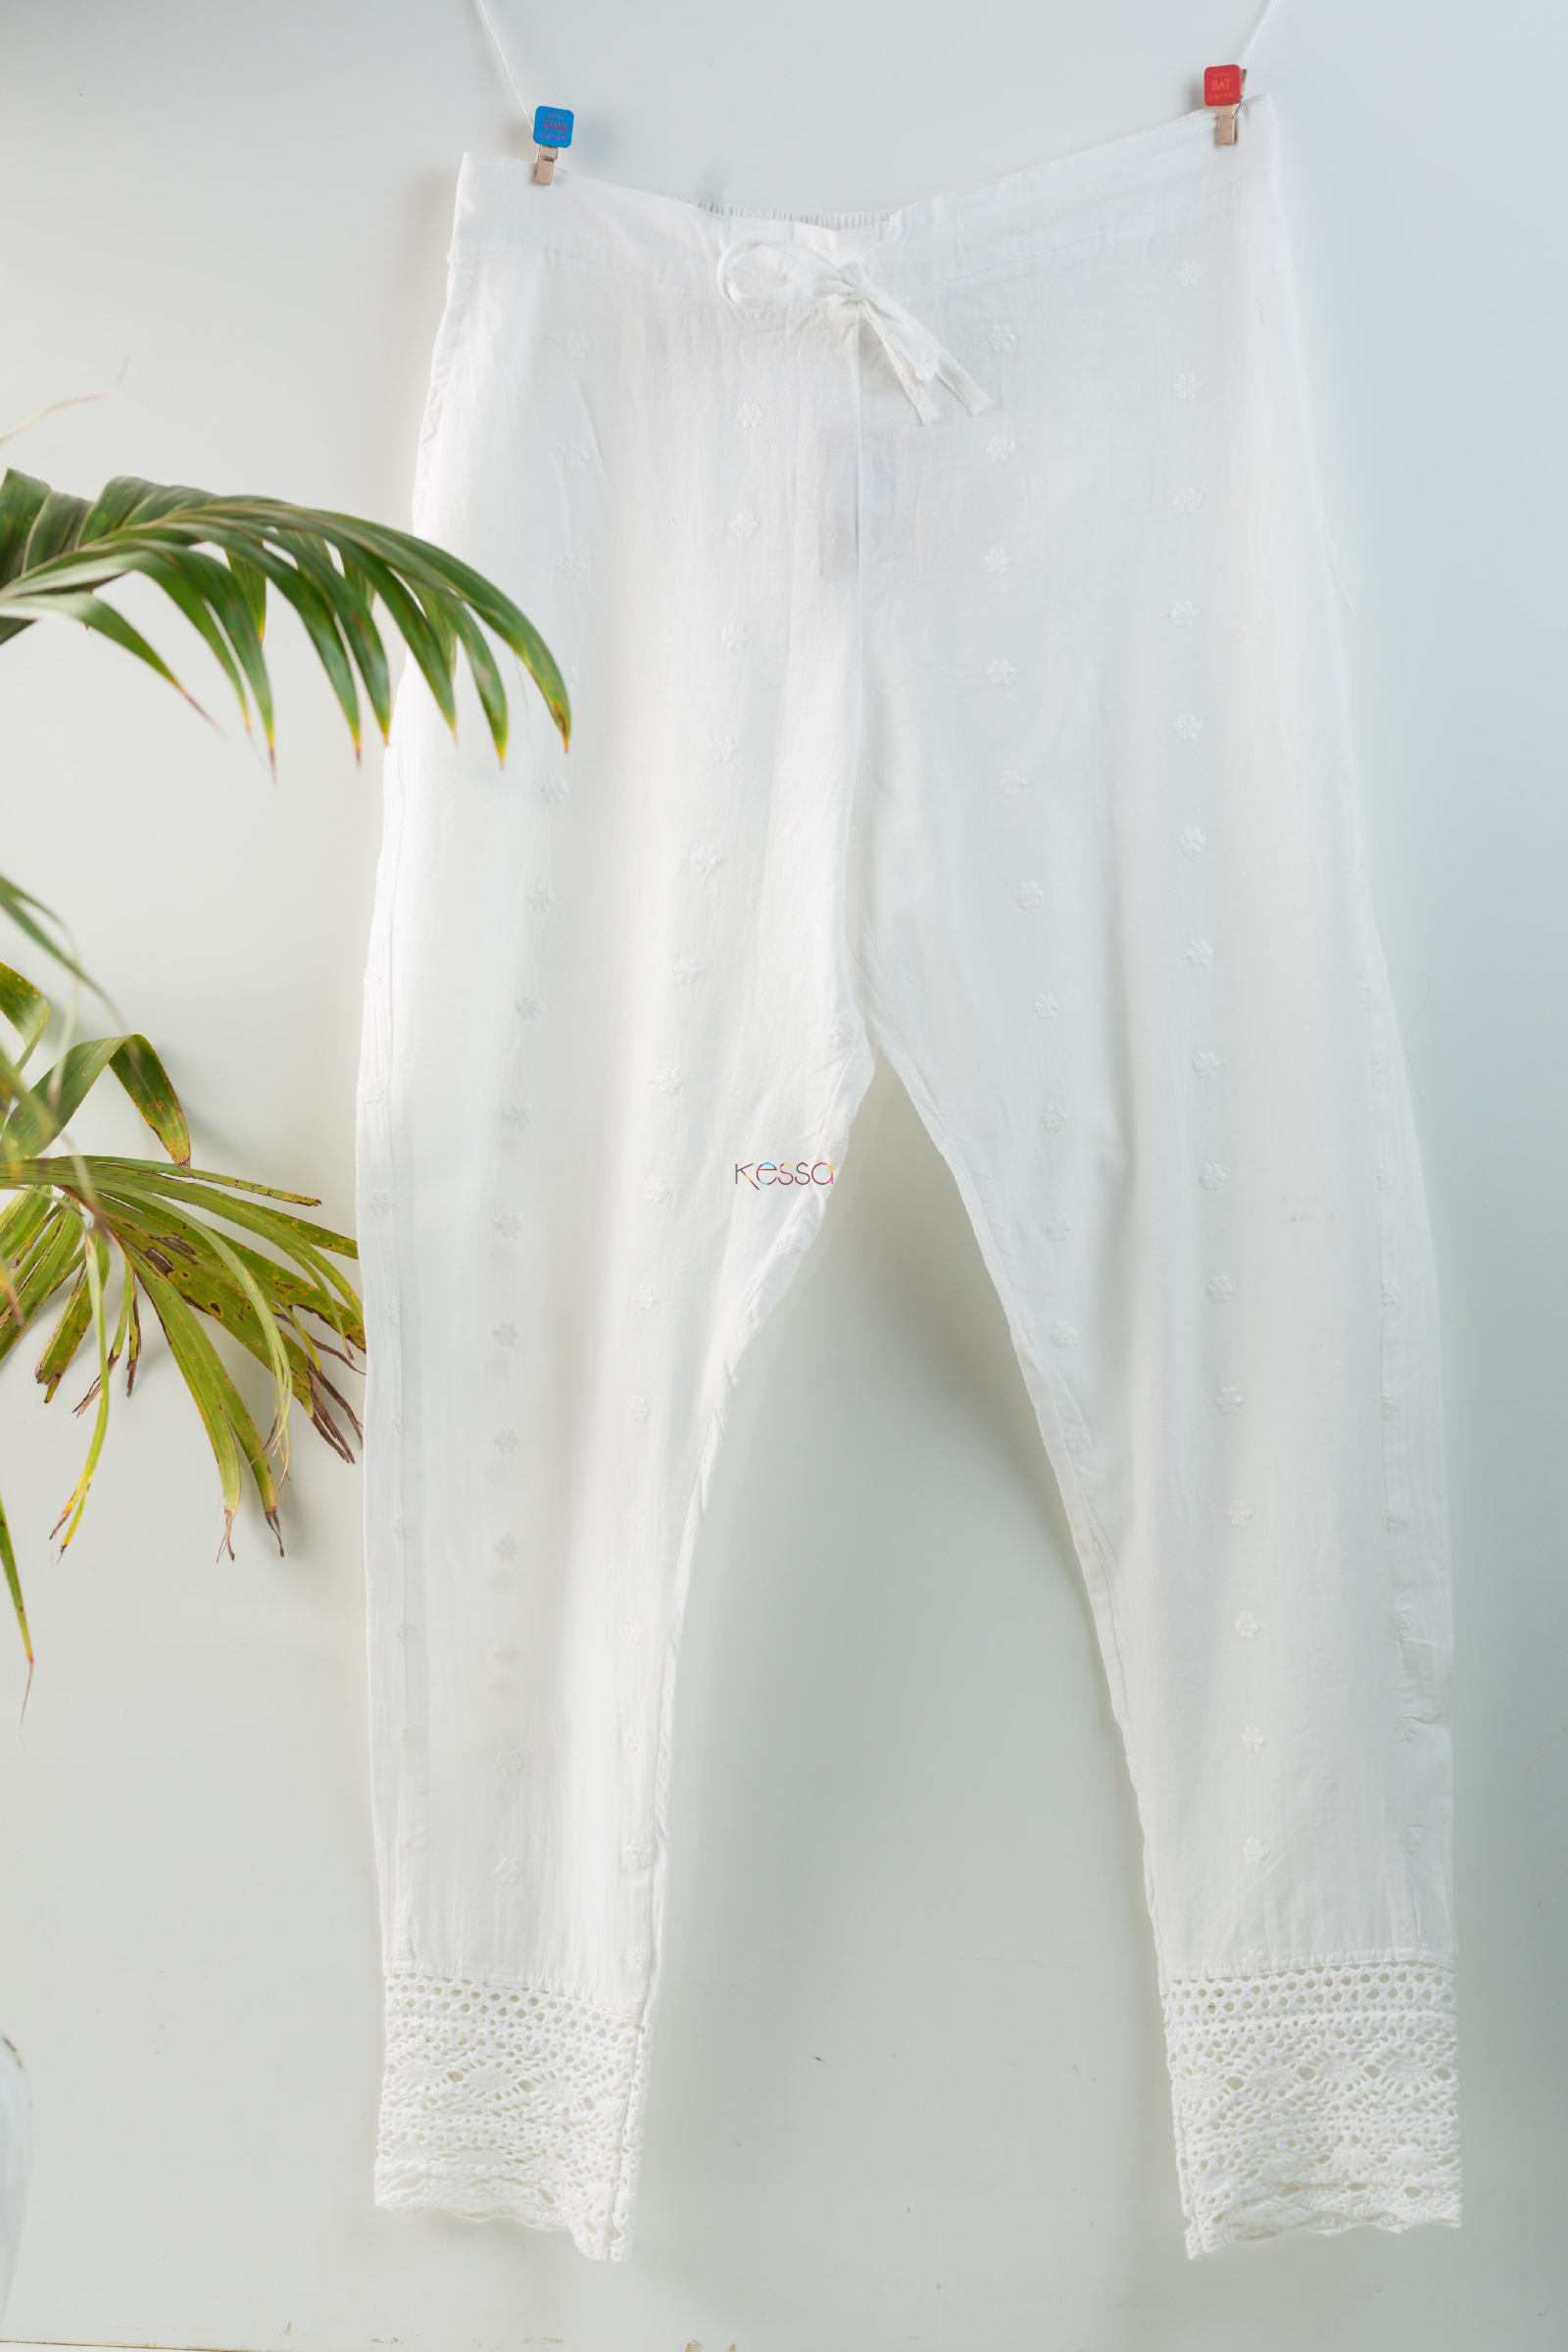 Kessa Ve06 Lace White Cotton Muslin Pant With Lace Featured Hd